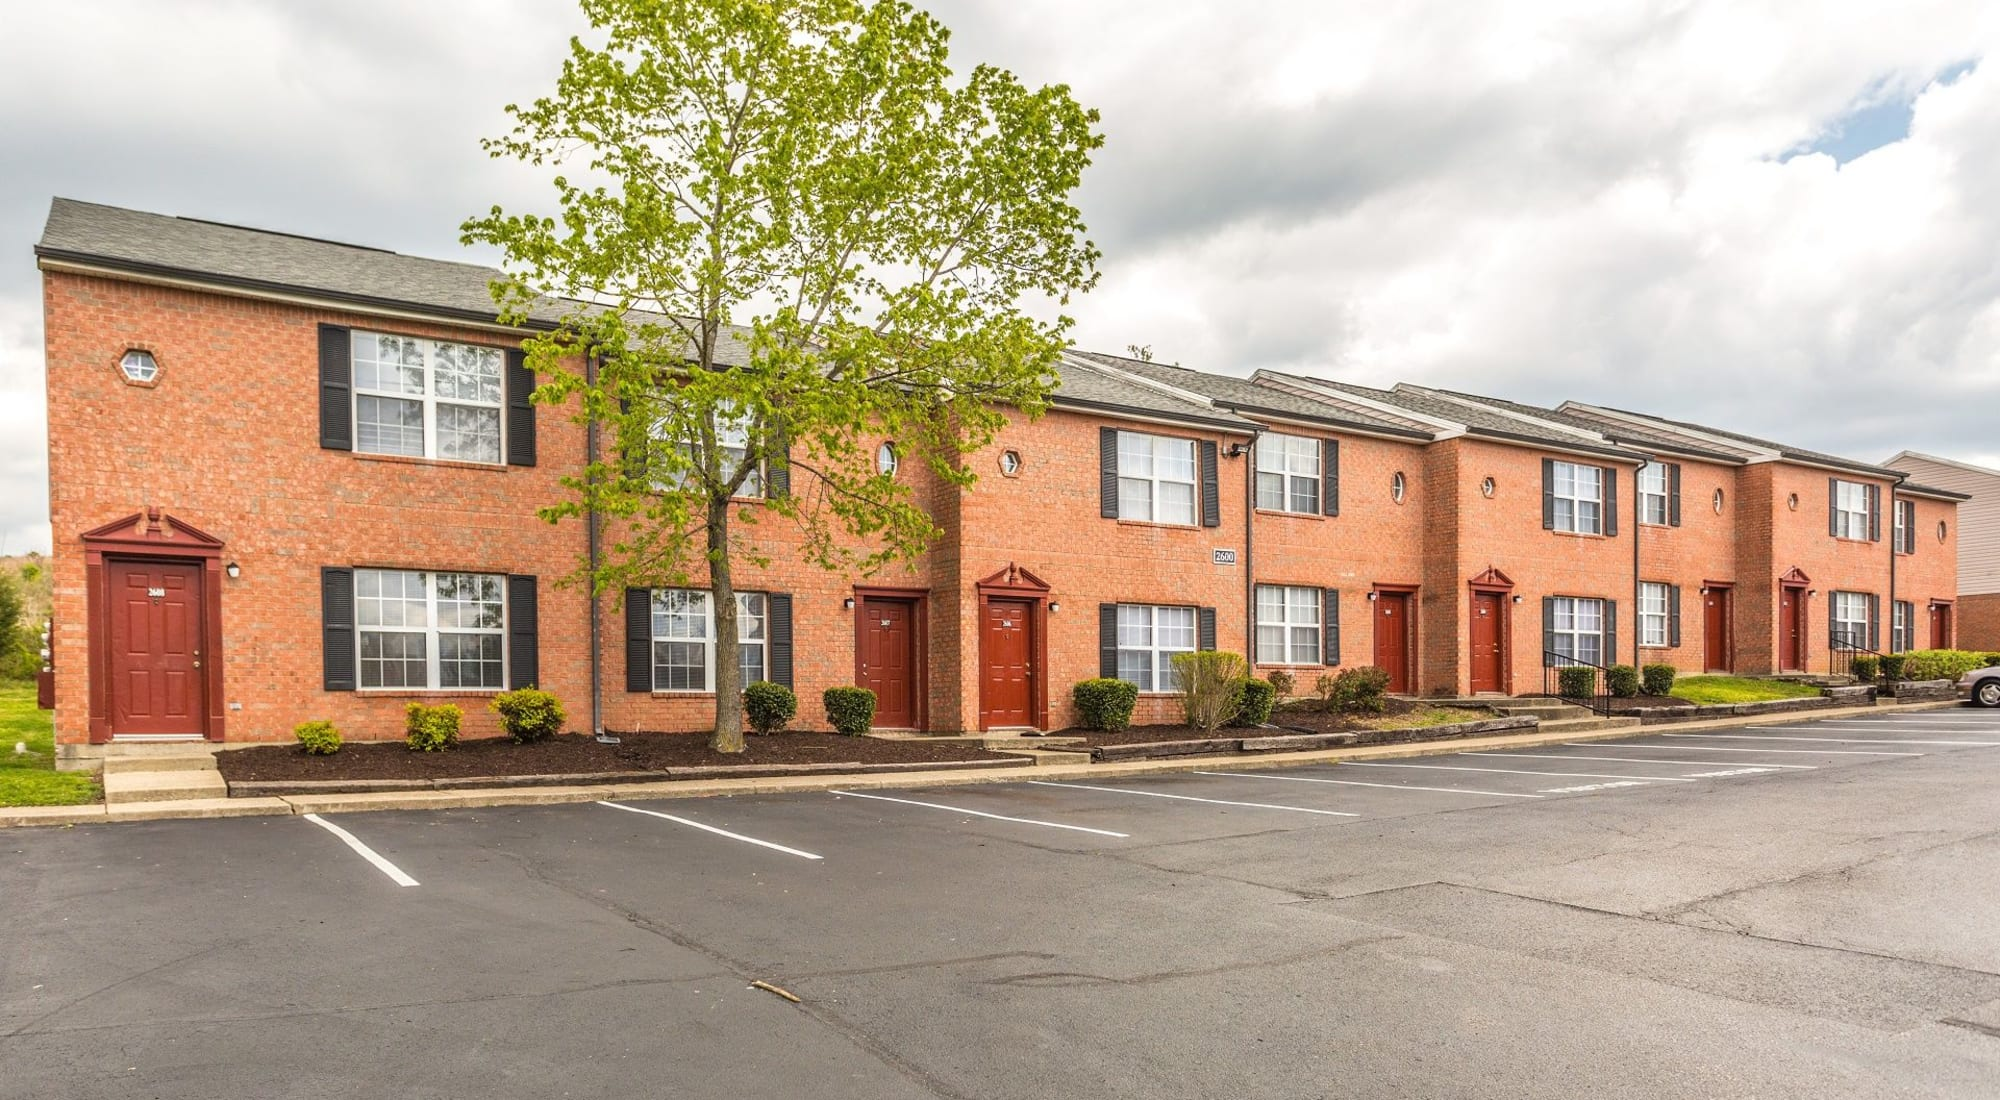 Maintenance request at Cypress Creek Townhomes in Goodlettsville, Tennessee